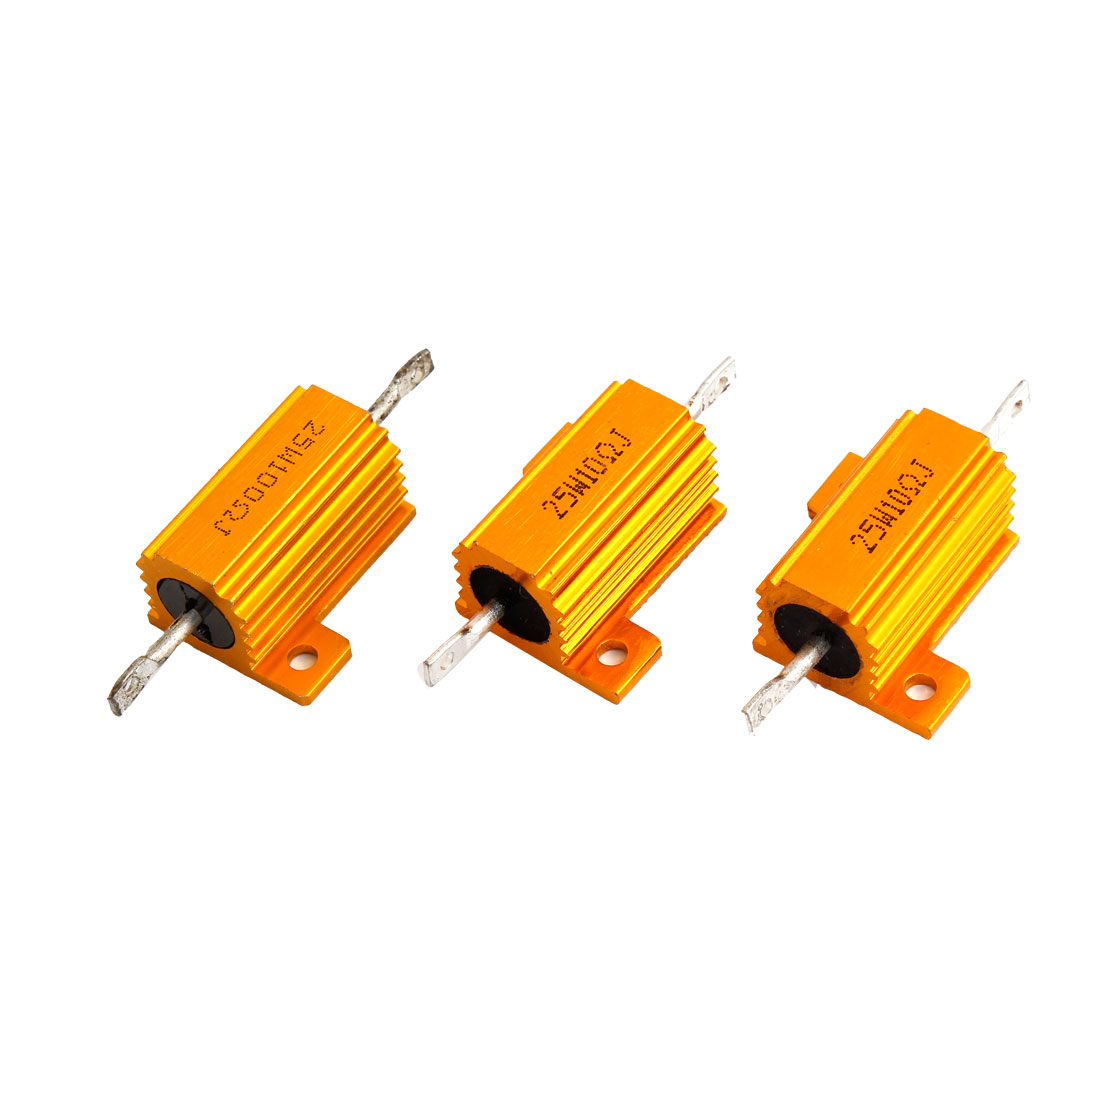 3 Pcs Chassis Mounting Aluminum Resistor Gold Tone 25W 10 Ohm